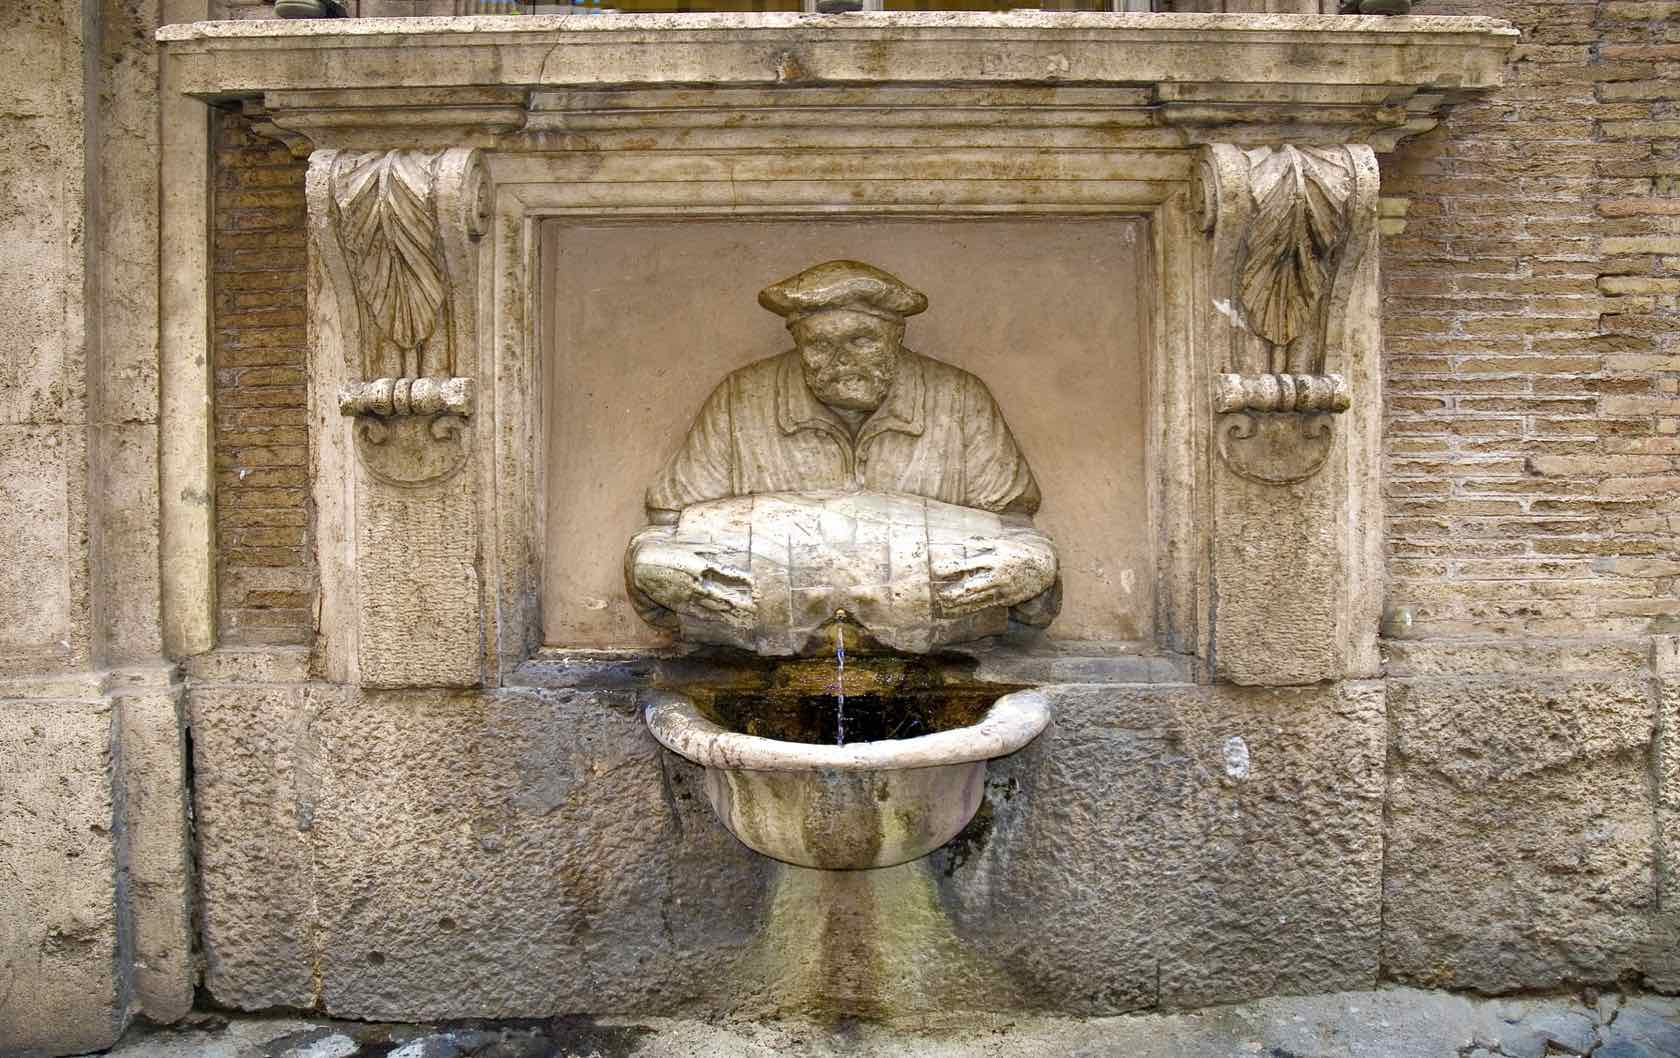 Fountain of the Facchino fountains in Rome